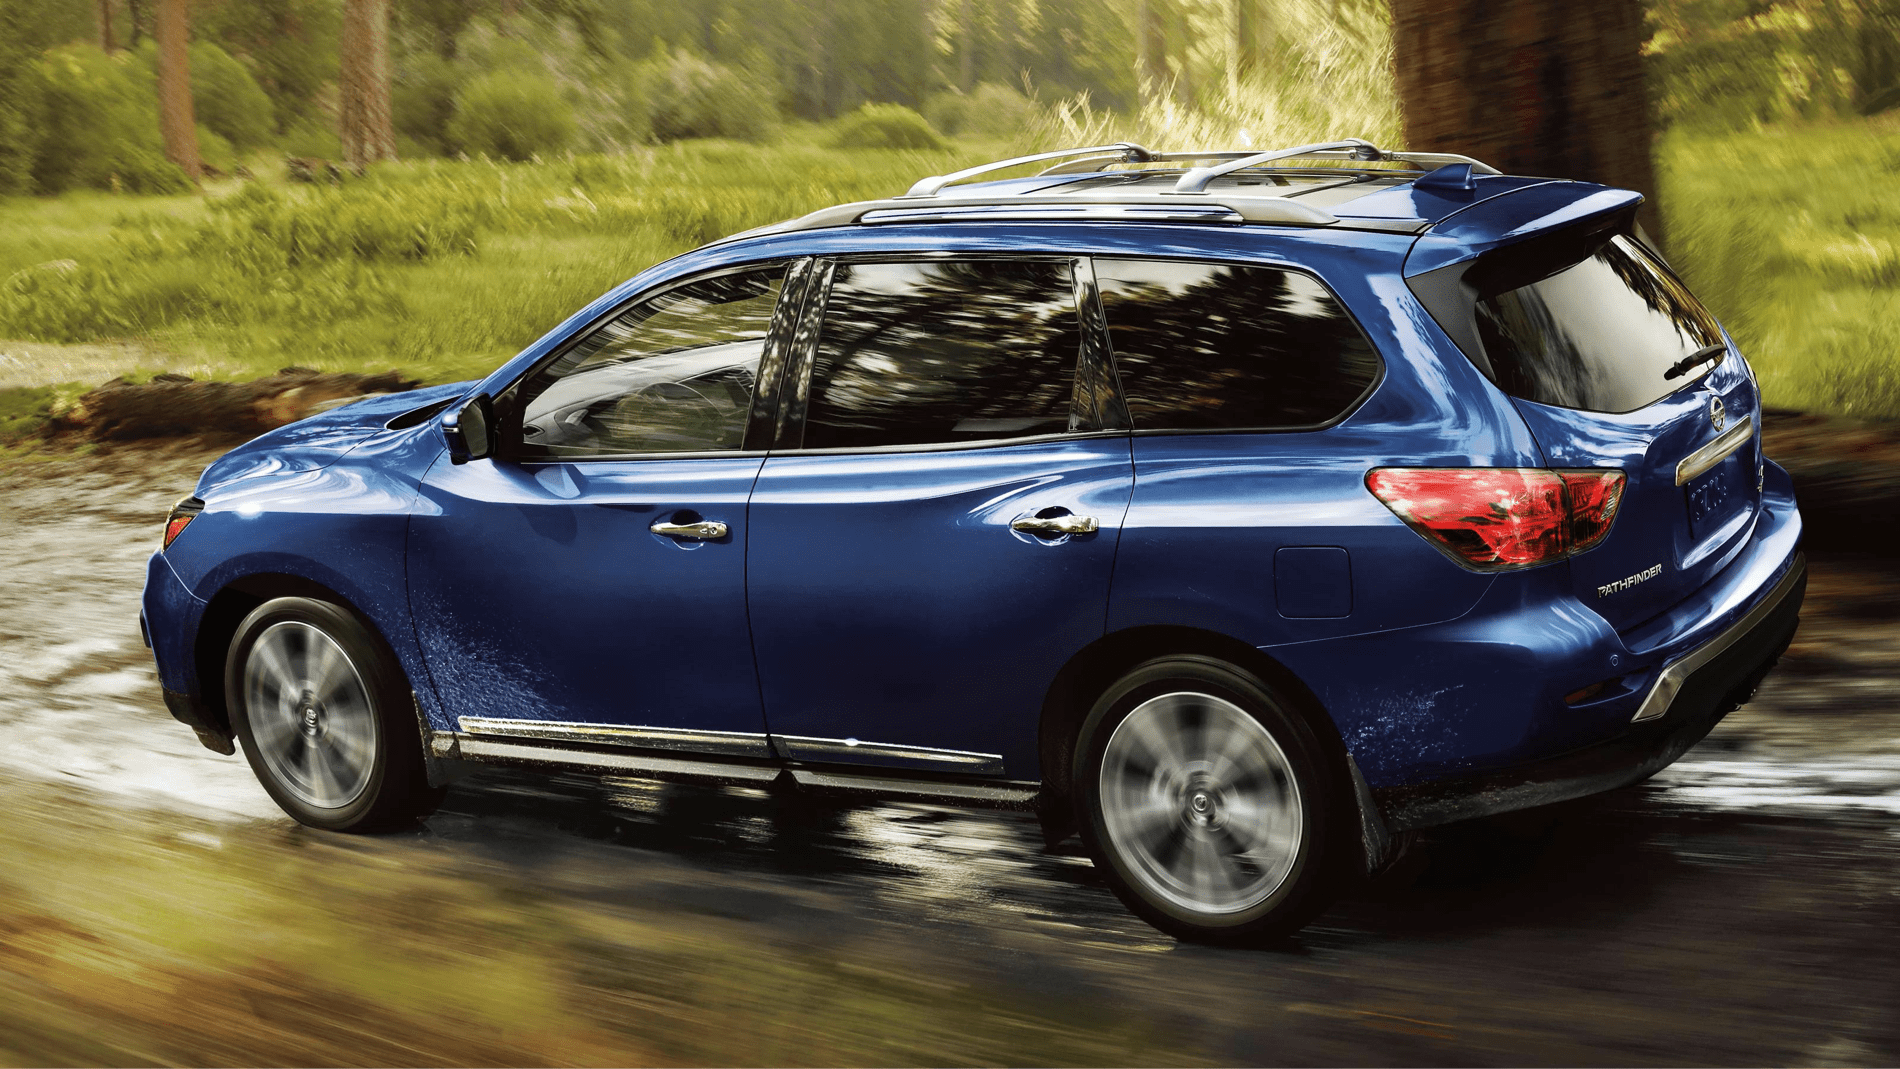 2020 Pathfinder drives in woods